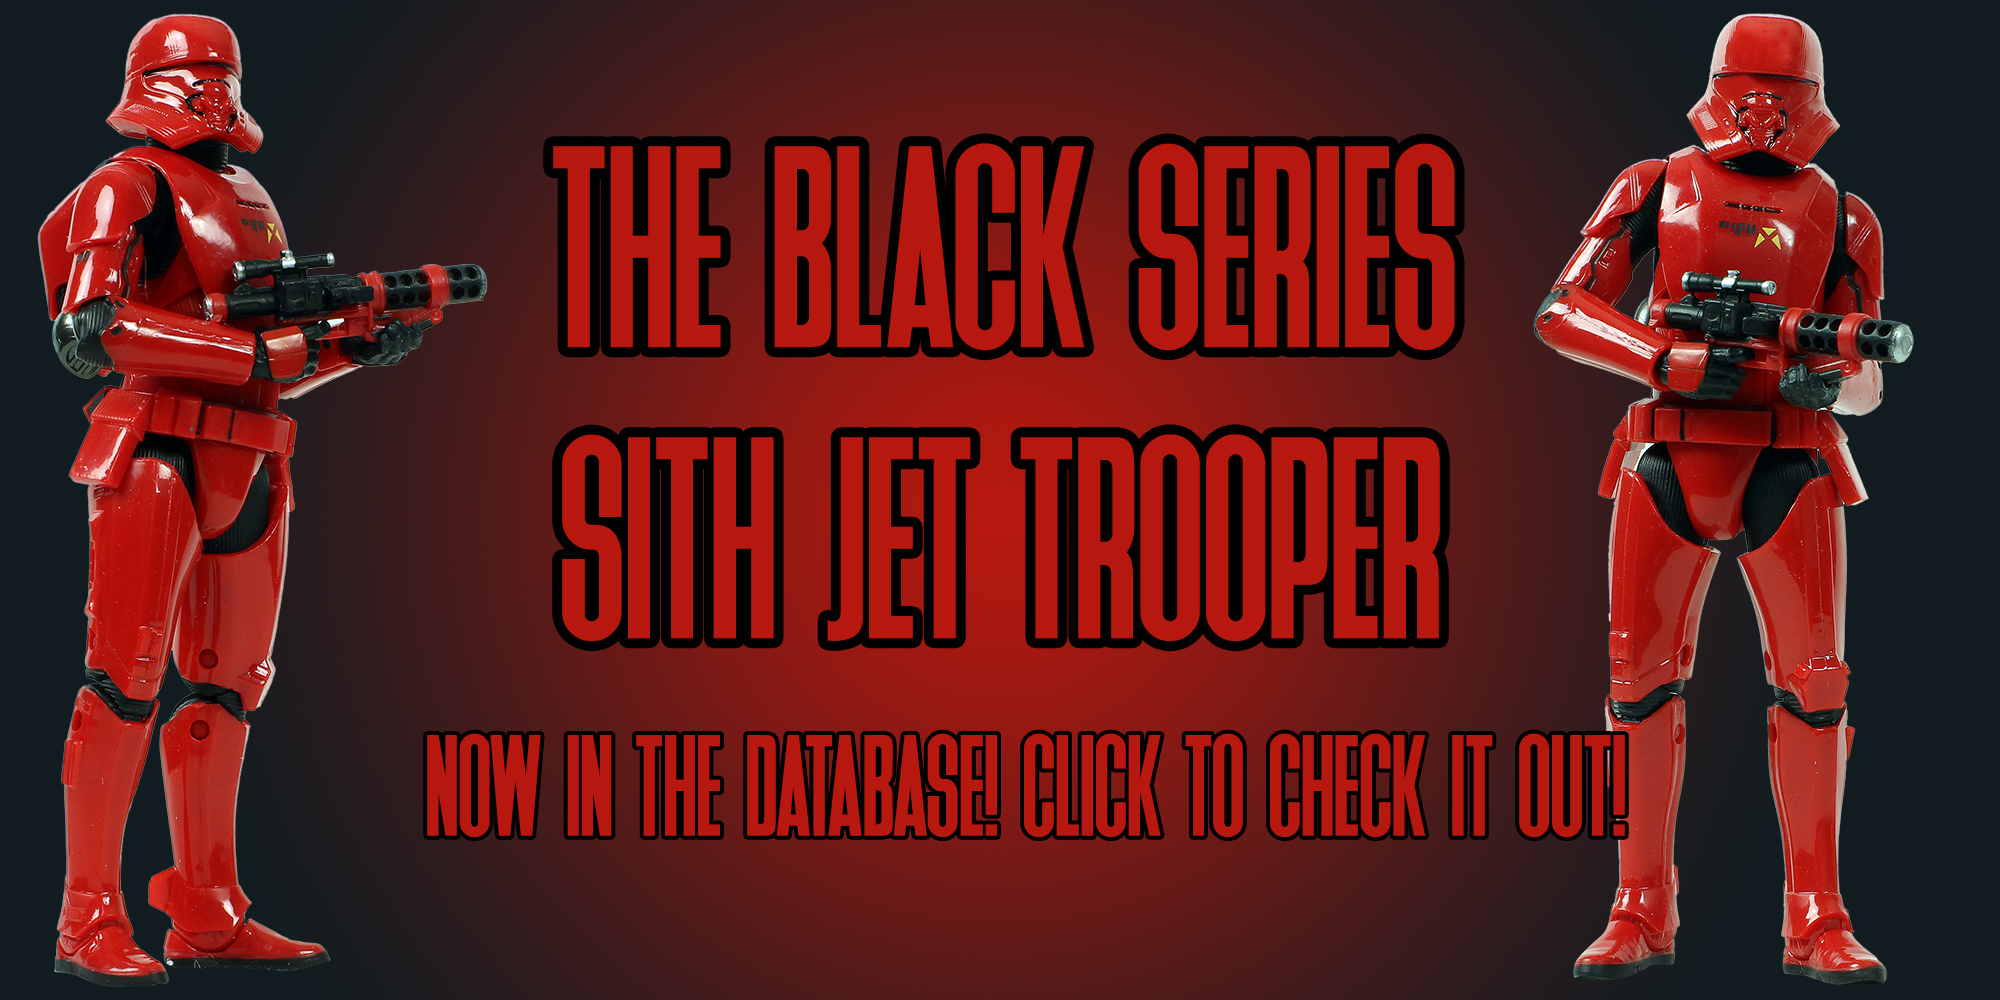 Black Series Sith Jet Trooper